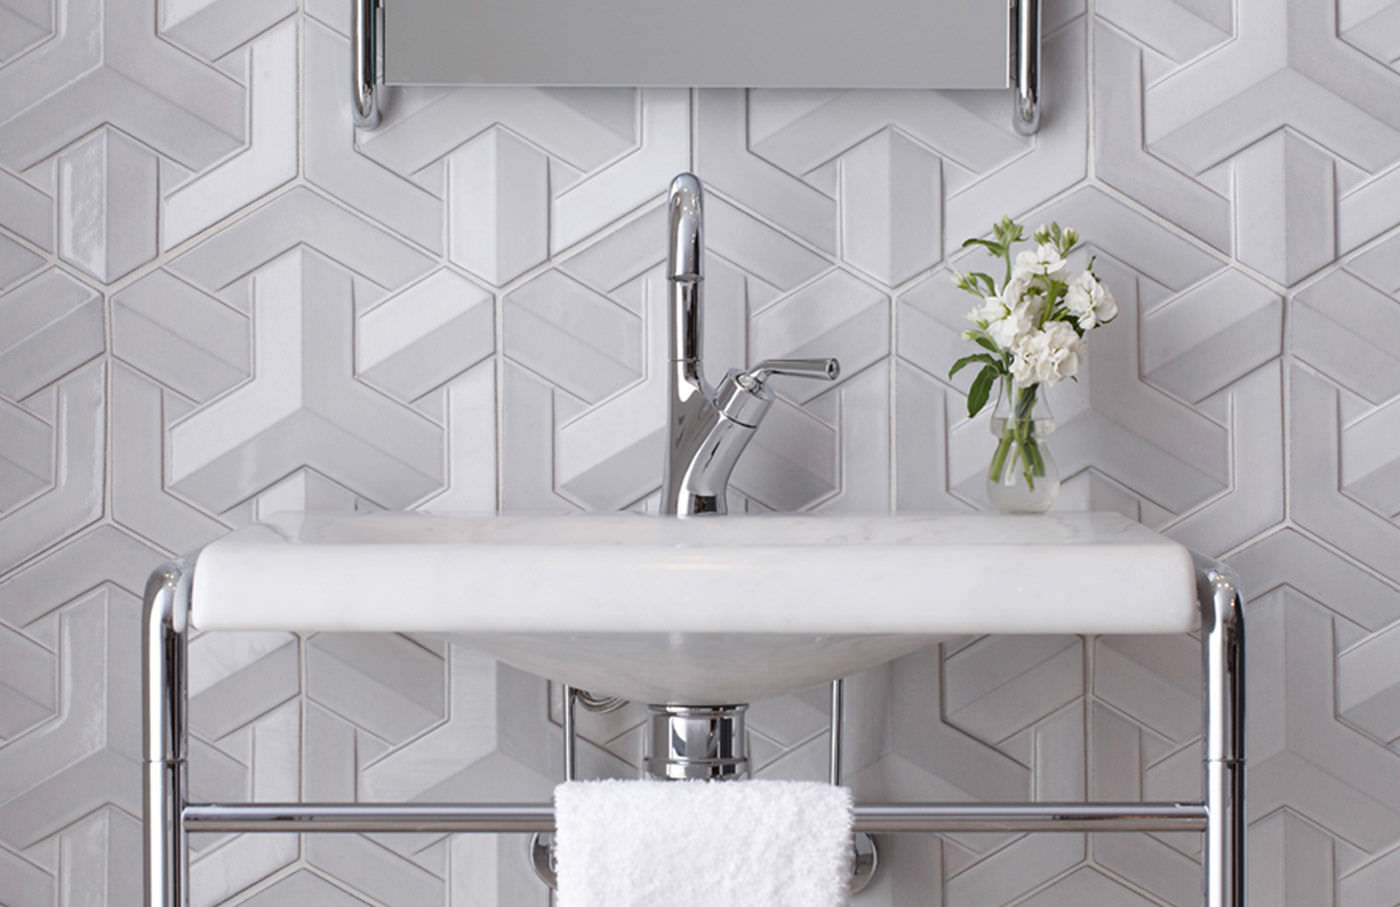 Indoor tile / bathroom / wall / concrete - GEO WEAVE - Daniel Ogassian